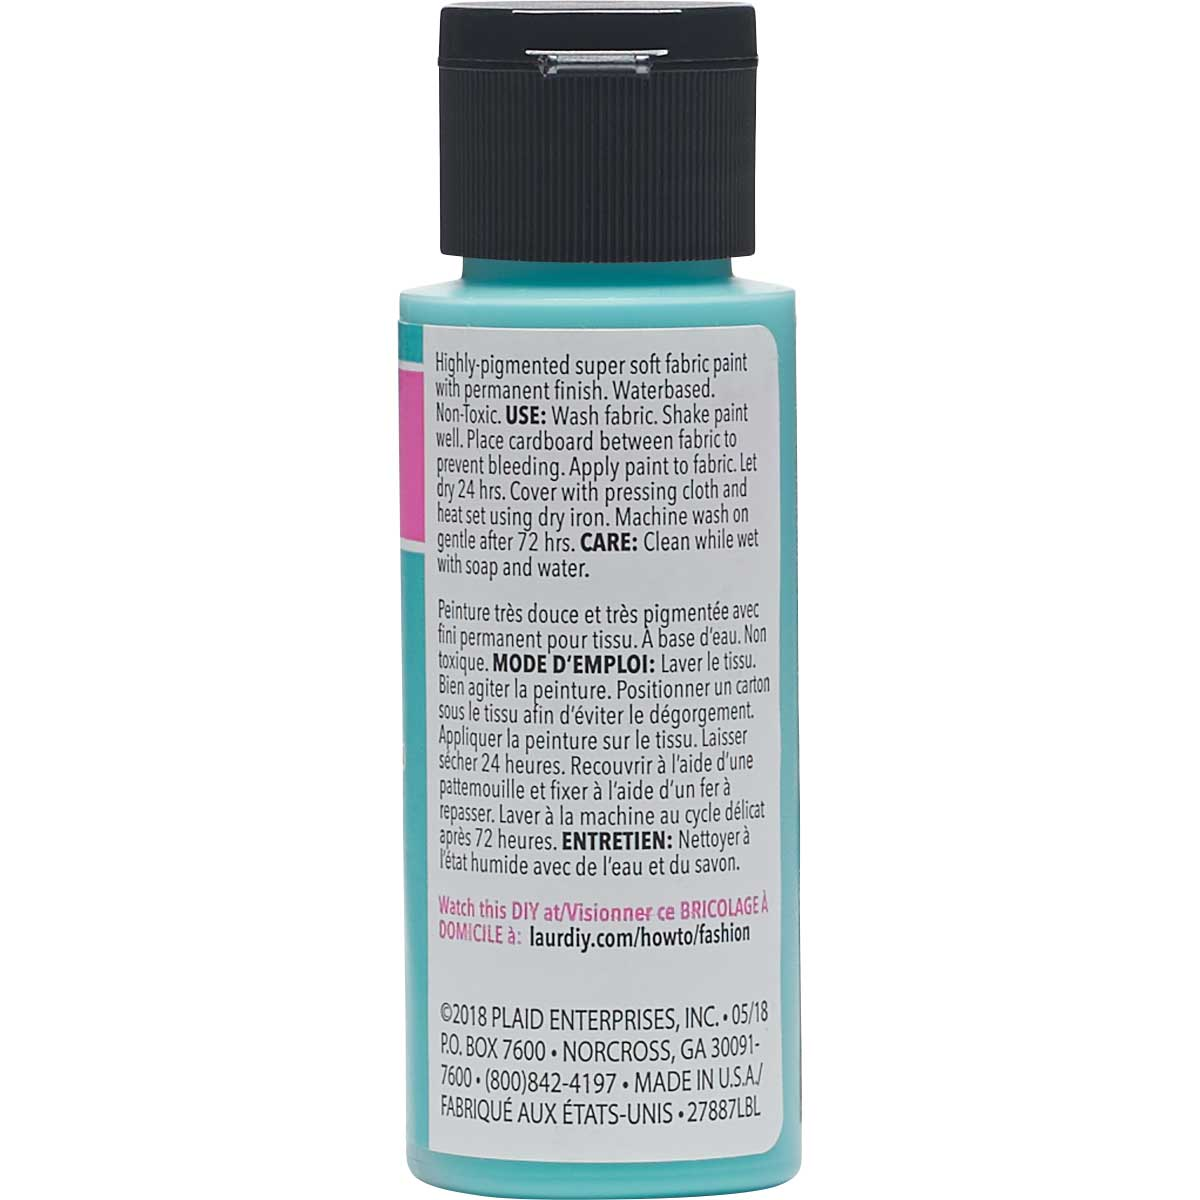 LaurDIY ® Perfect Fabric Paint - Aquamarine, 2 oz.